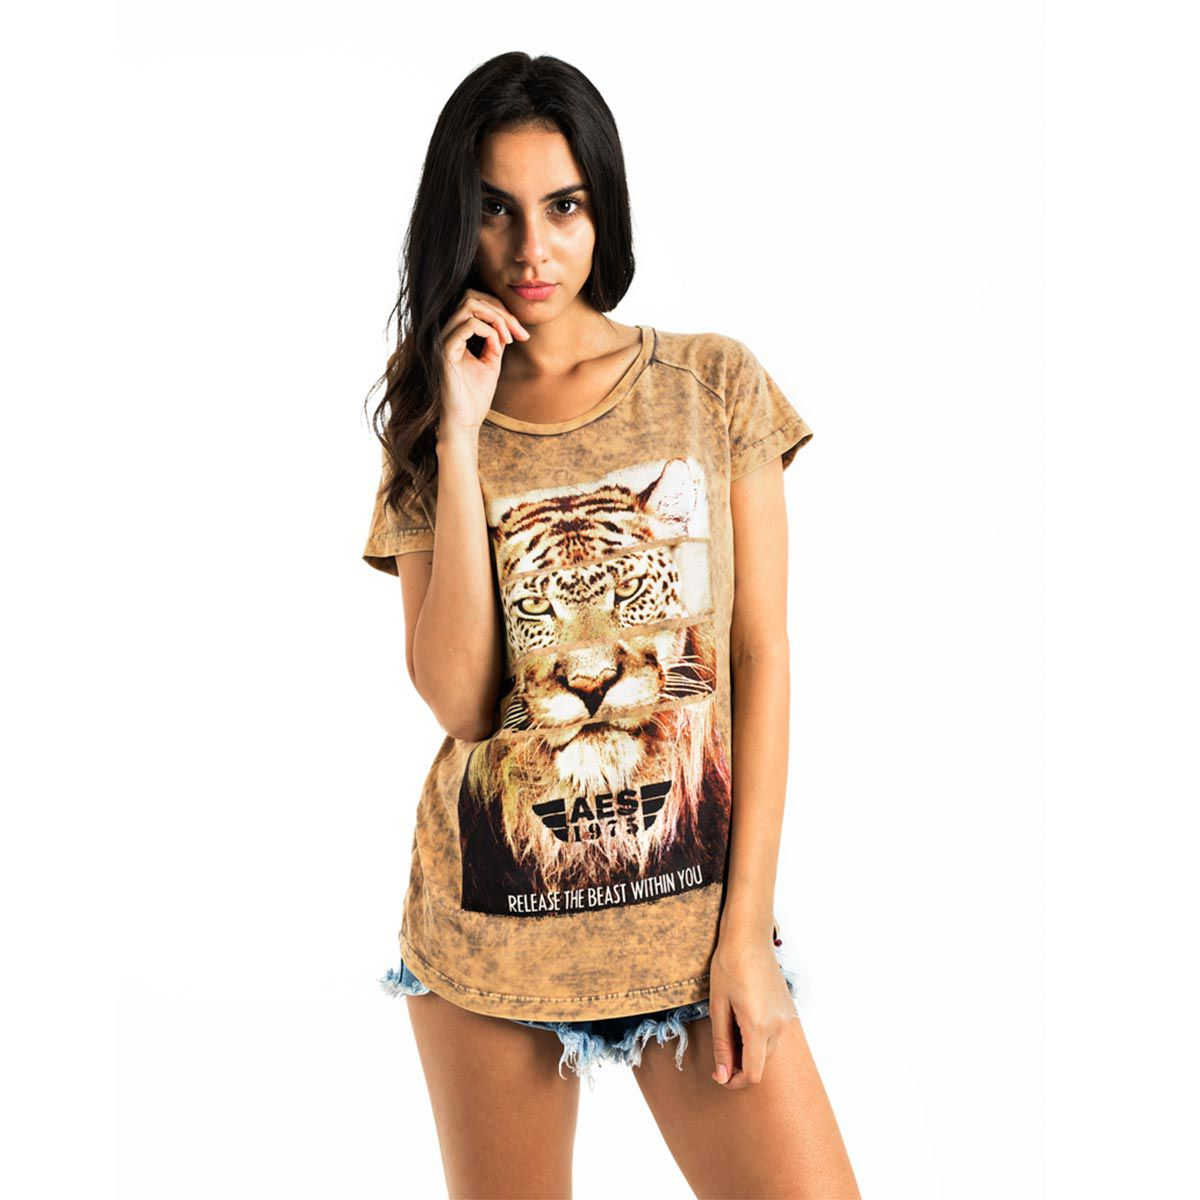 Camiseta AES 1975 Animals